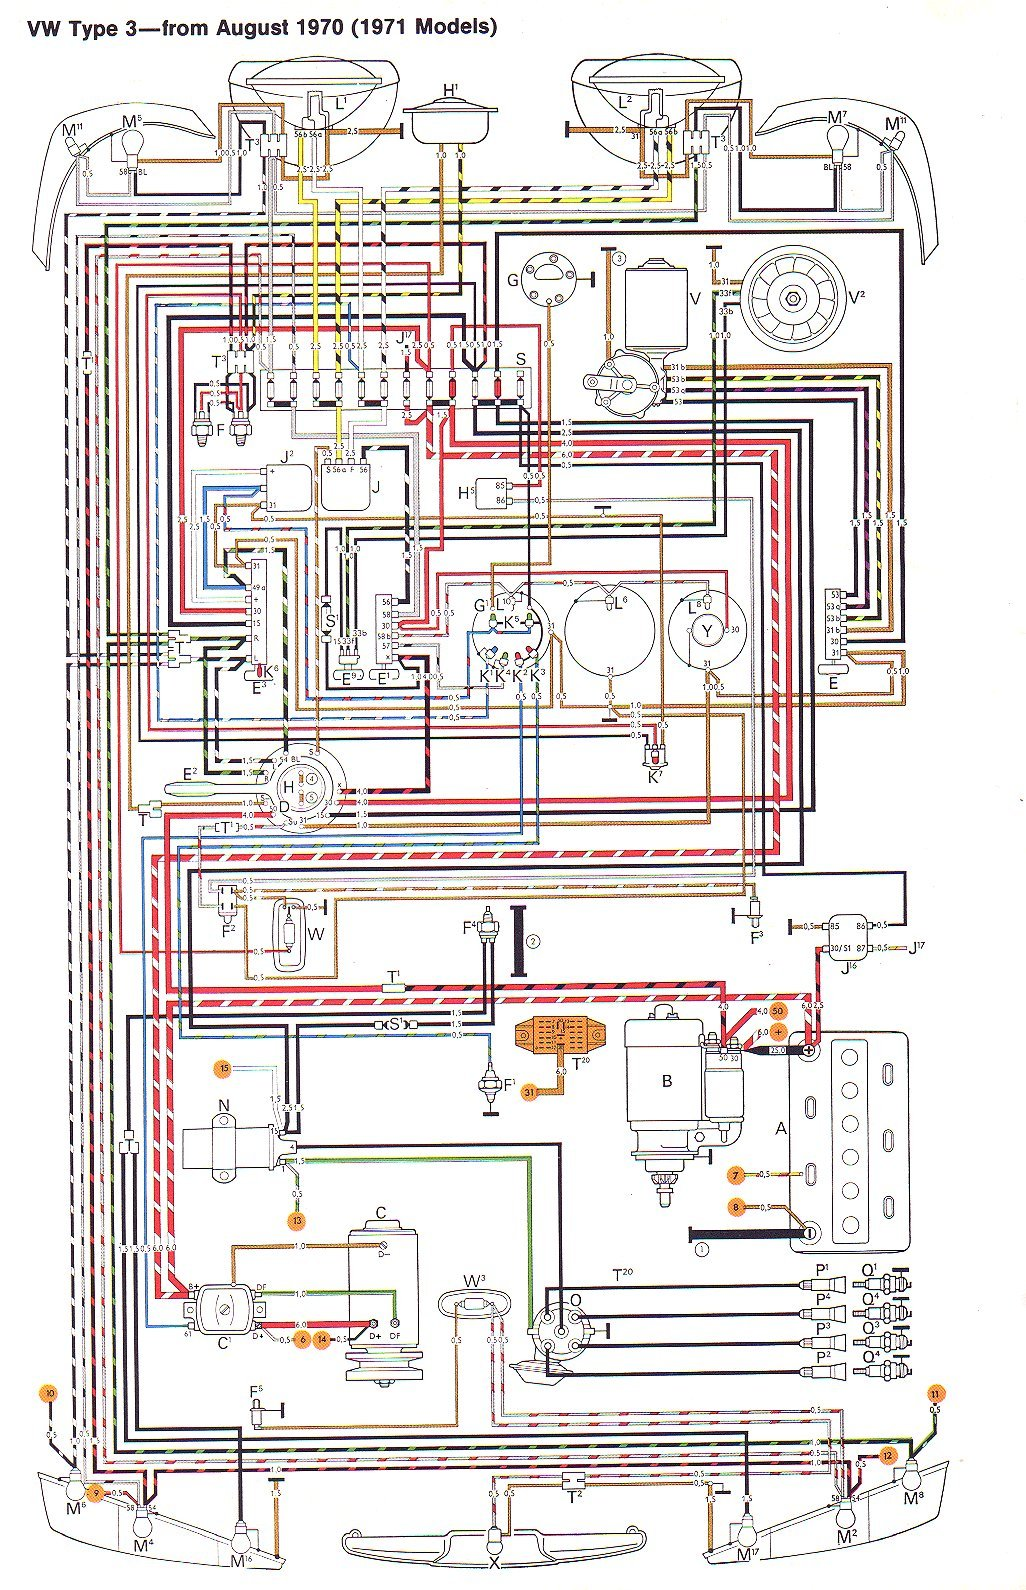 Vw type 3 wiring diagrams asfbconference2016 Image collections